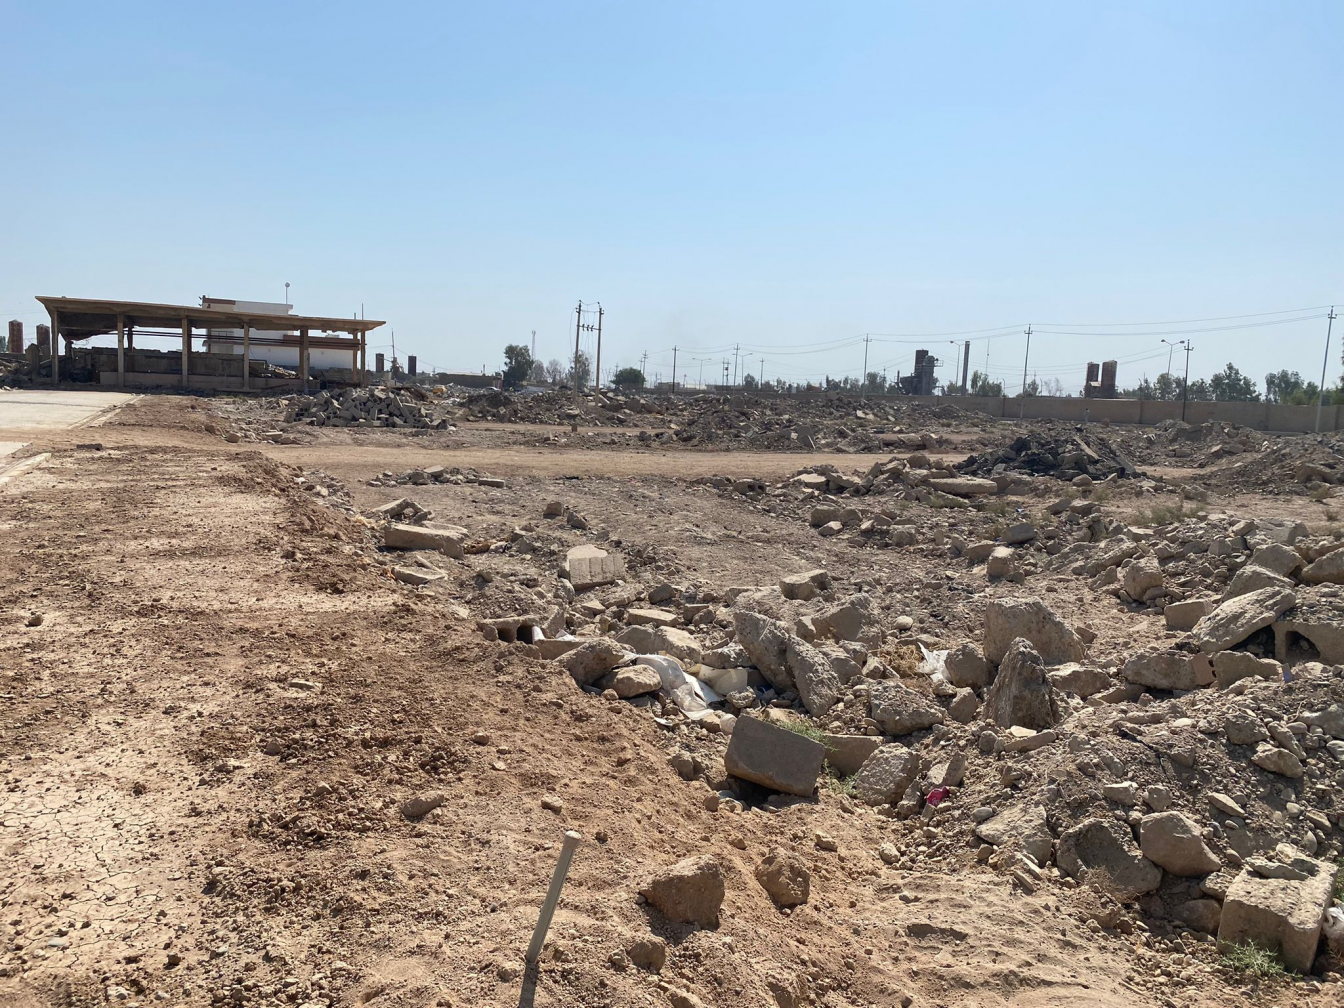 The site where an ISIS IED factory was bombed by the Netherlands. Photo Roos Boer / PAX